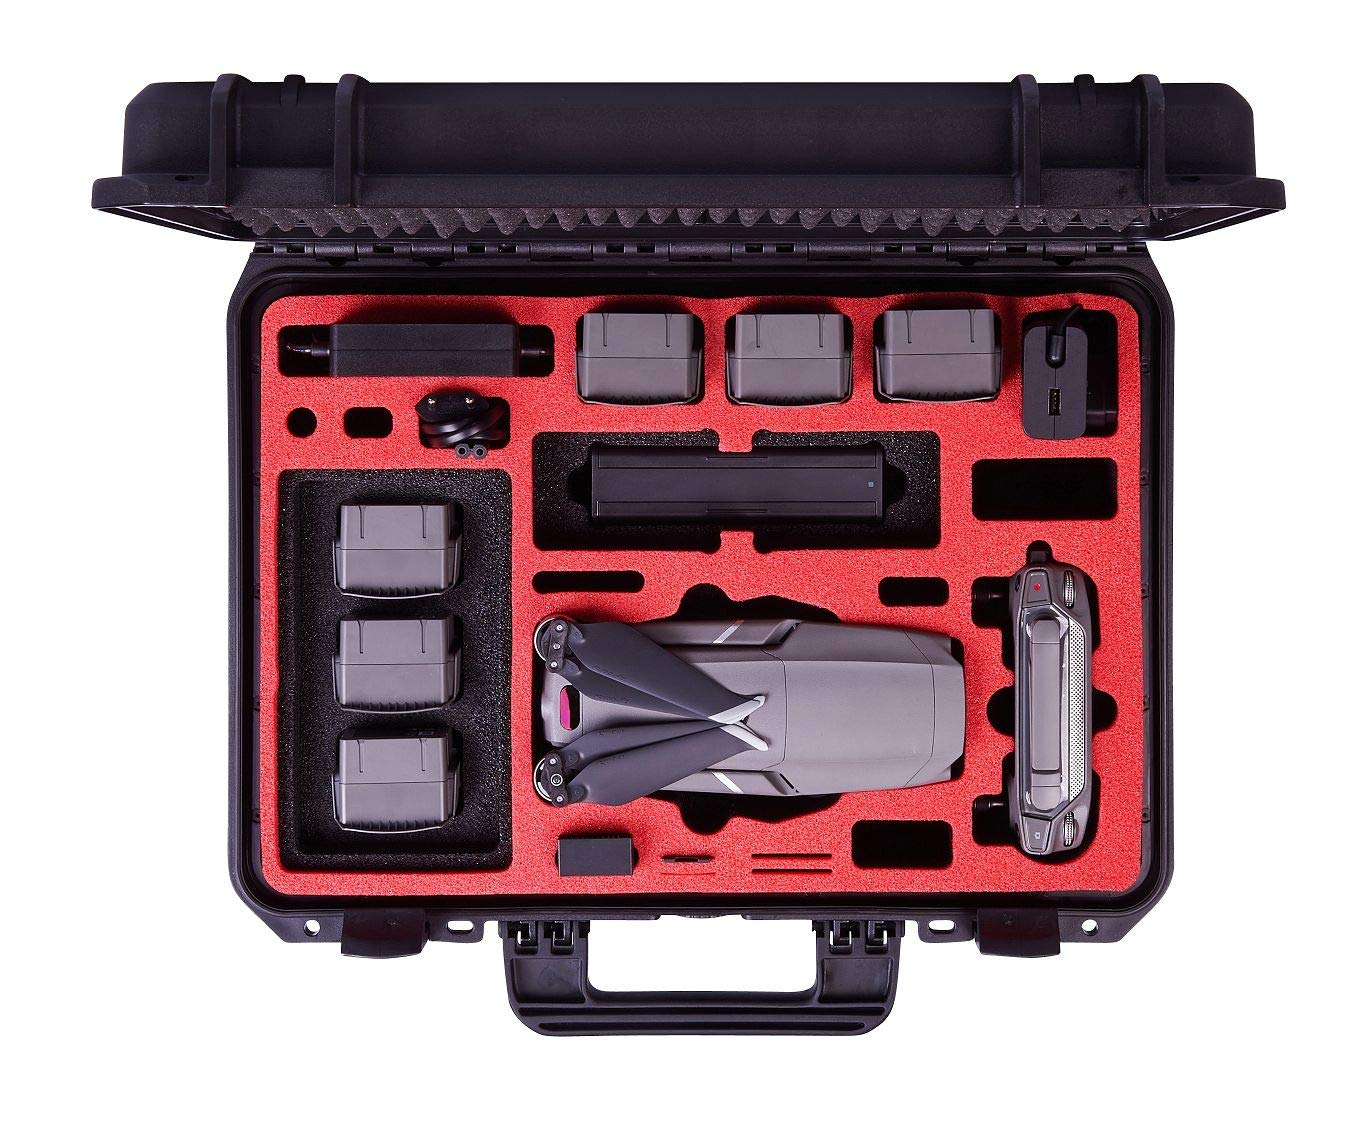 MC-CASES Professional Carrying Case for DJI Mavic 2 Series and DJI Smart Controller Explorer Edition - Space for 9 Batteries - Waterproofed - Made in Germany by mc-cases